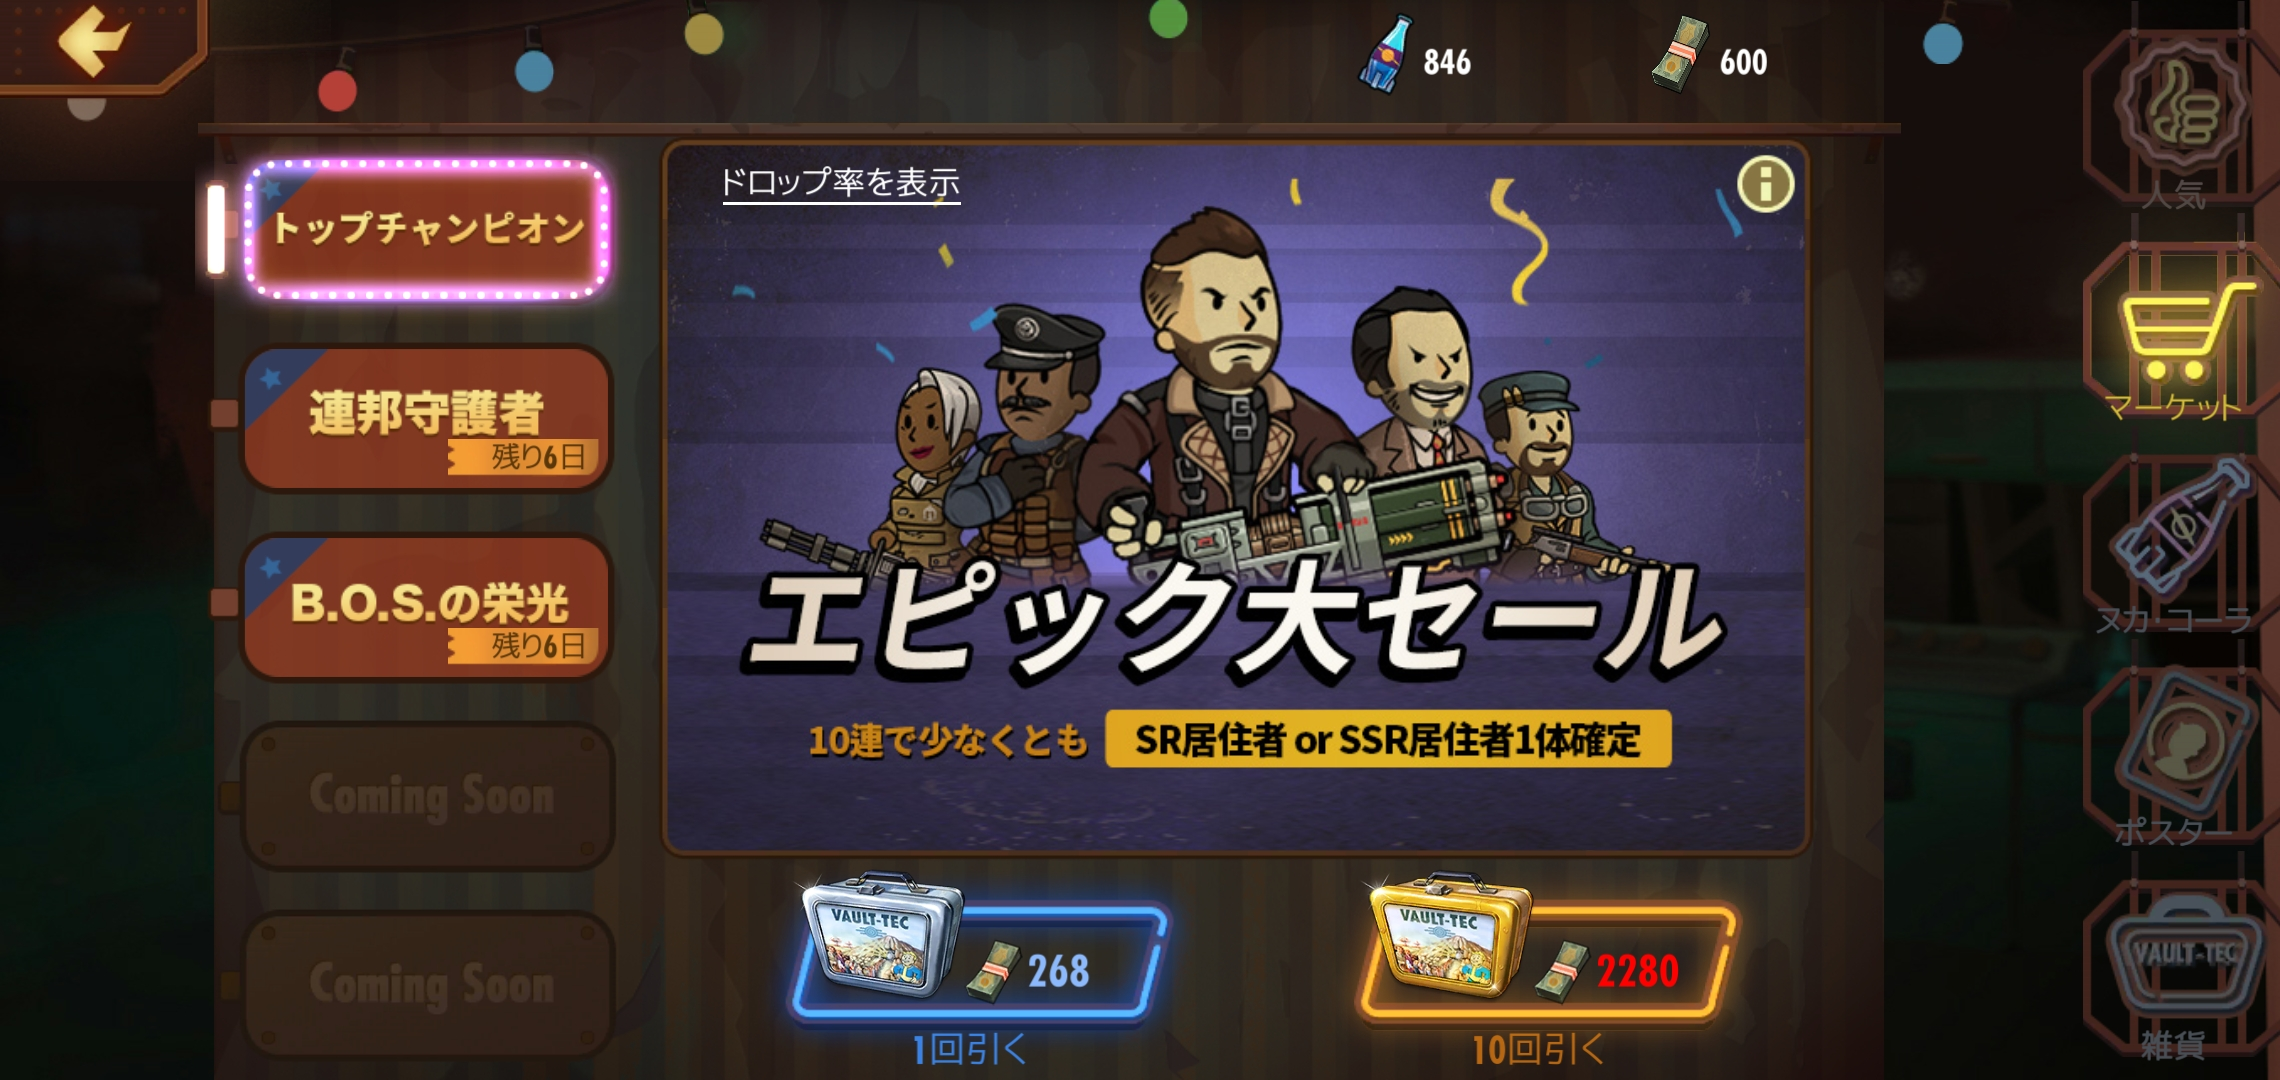 【Fallout Shelter Online】ガチャはどれがおすすめ?